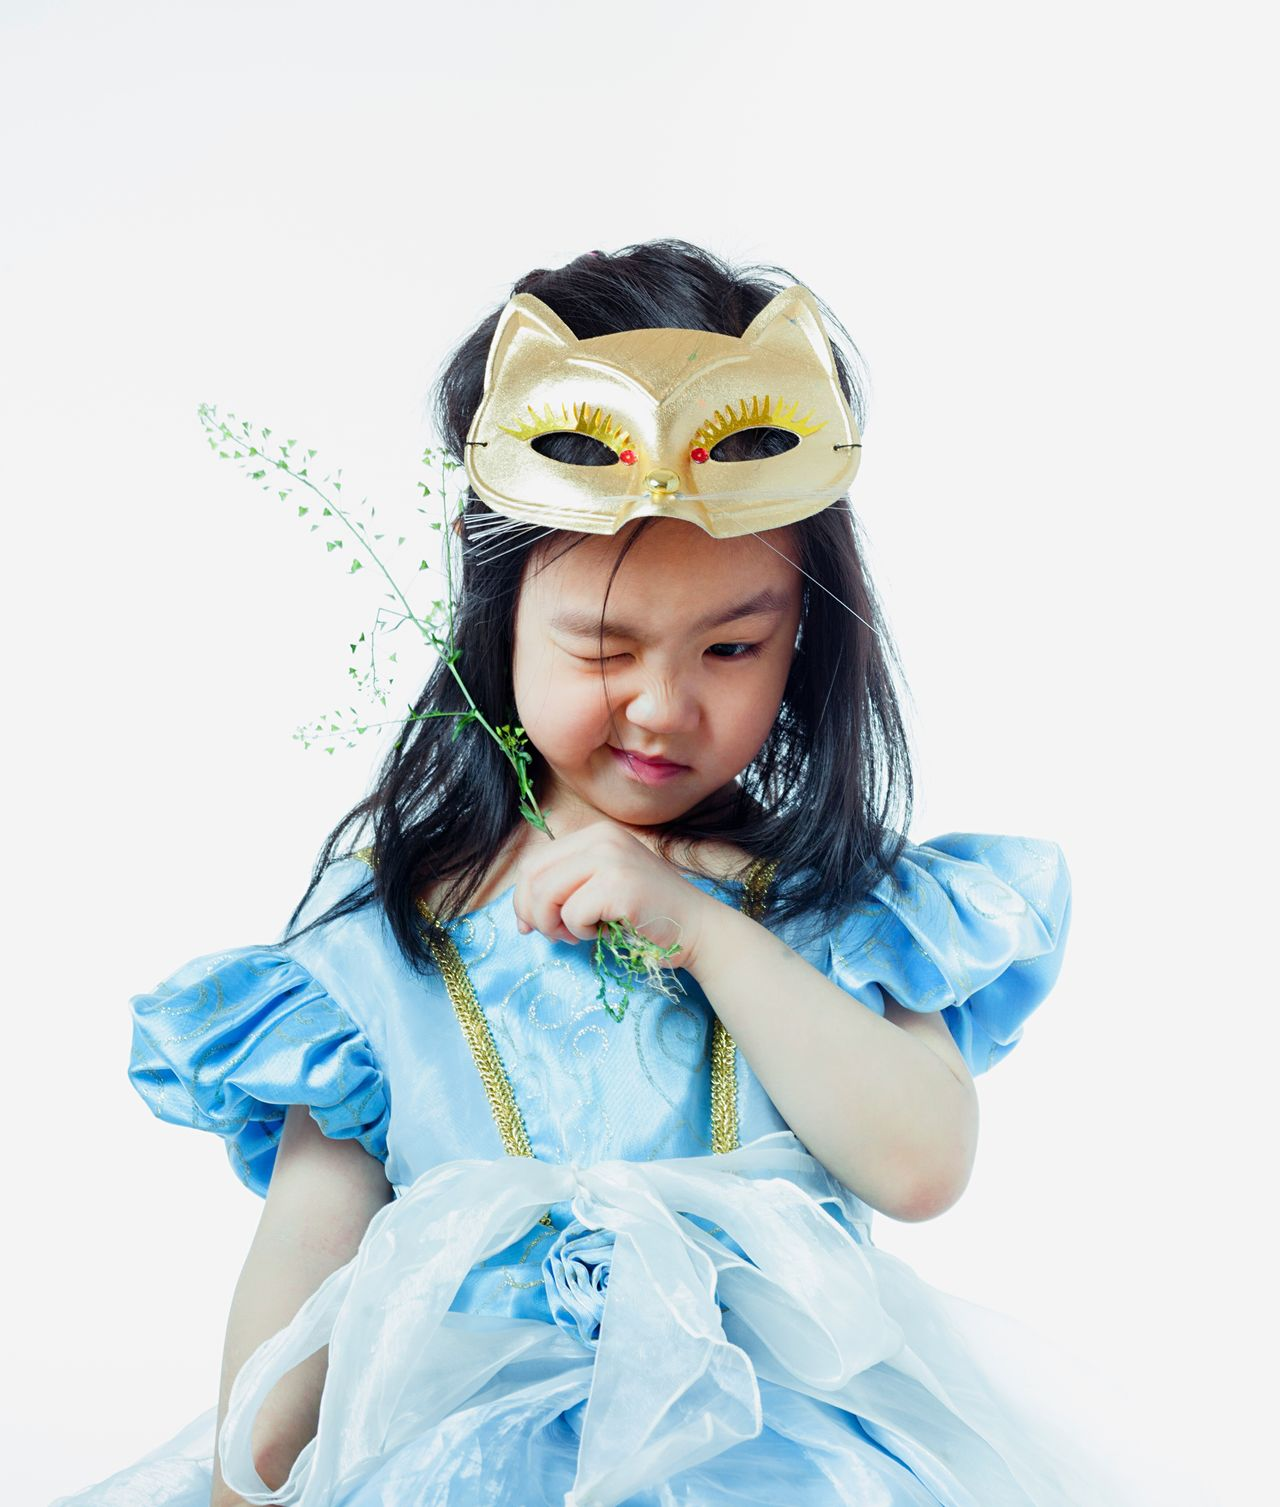 Cinderella 4yearsold One Girl Only Girls Child Childhood Children Only One Person Dressing Up Crown Tiara Disguise Princess Portrait Cape  Front View Costume Headshot People White Background Halloween Cute